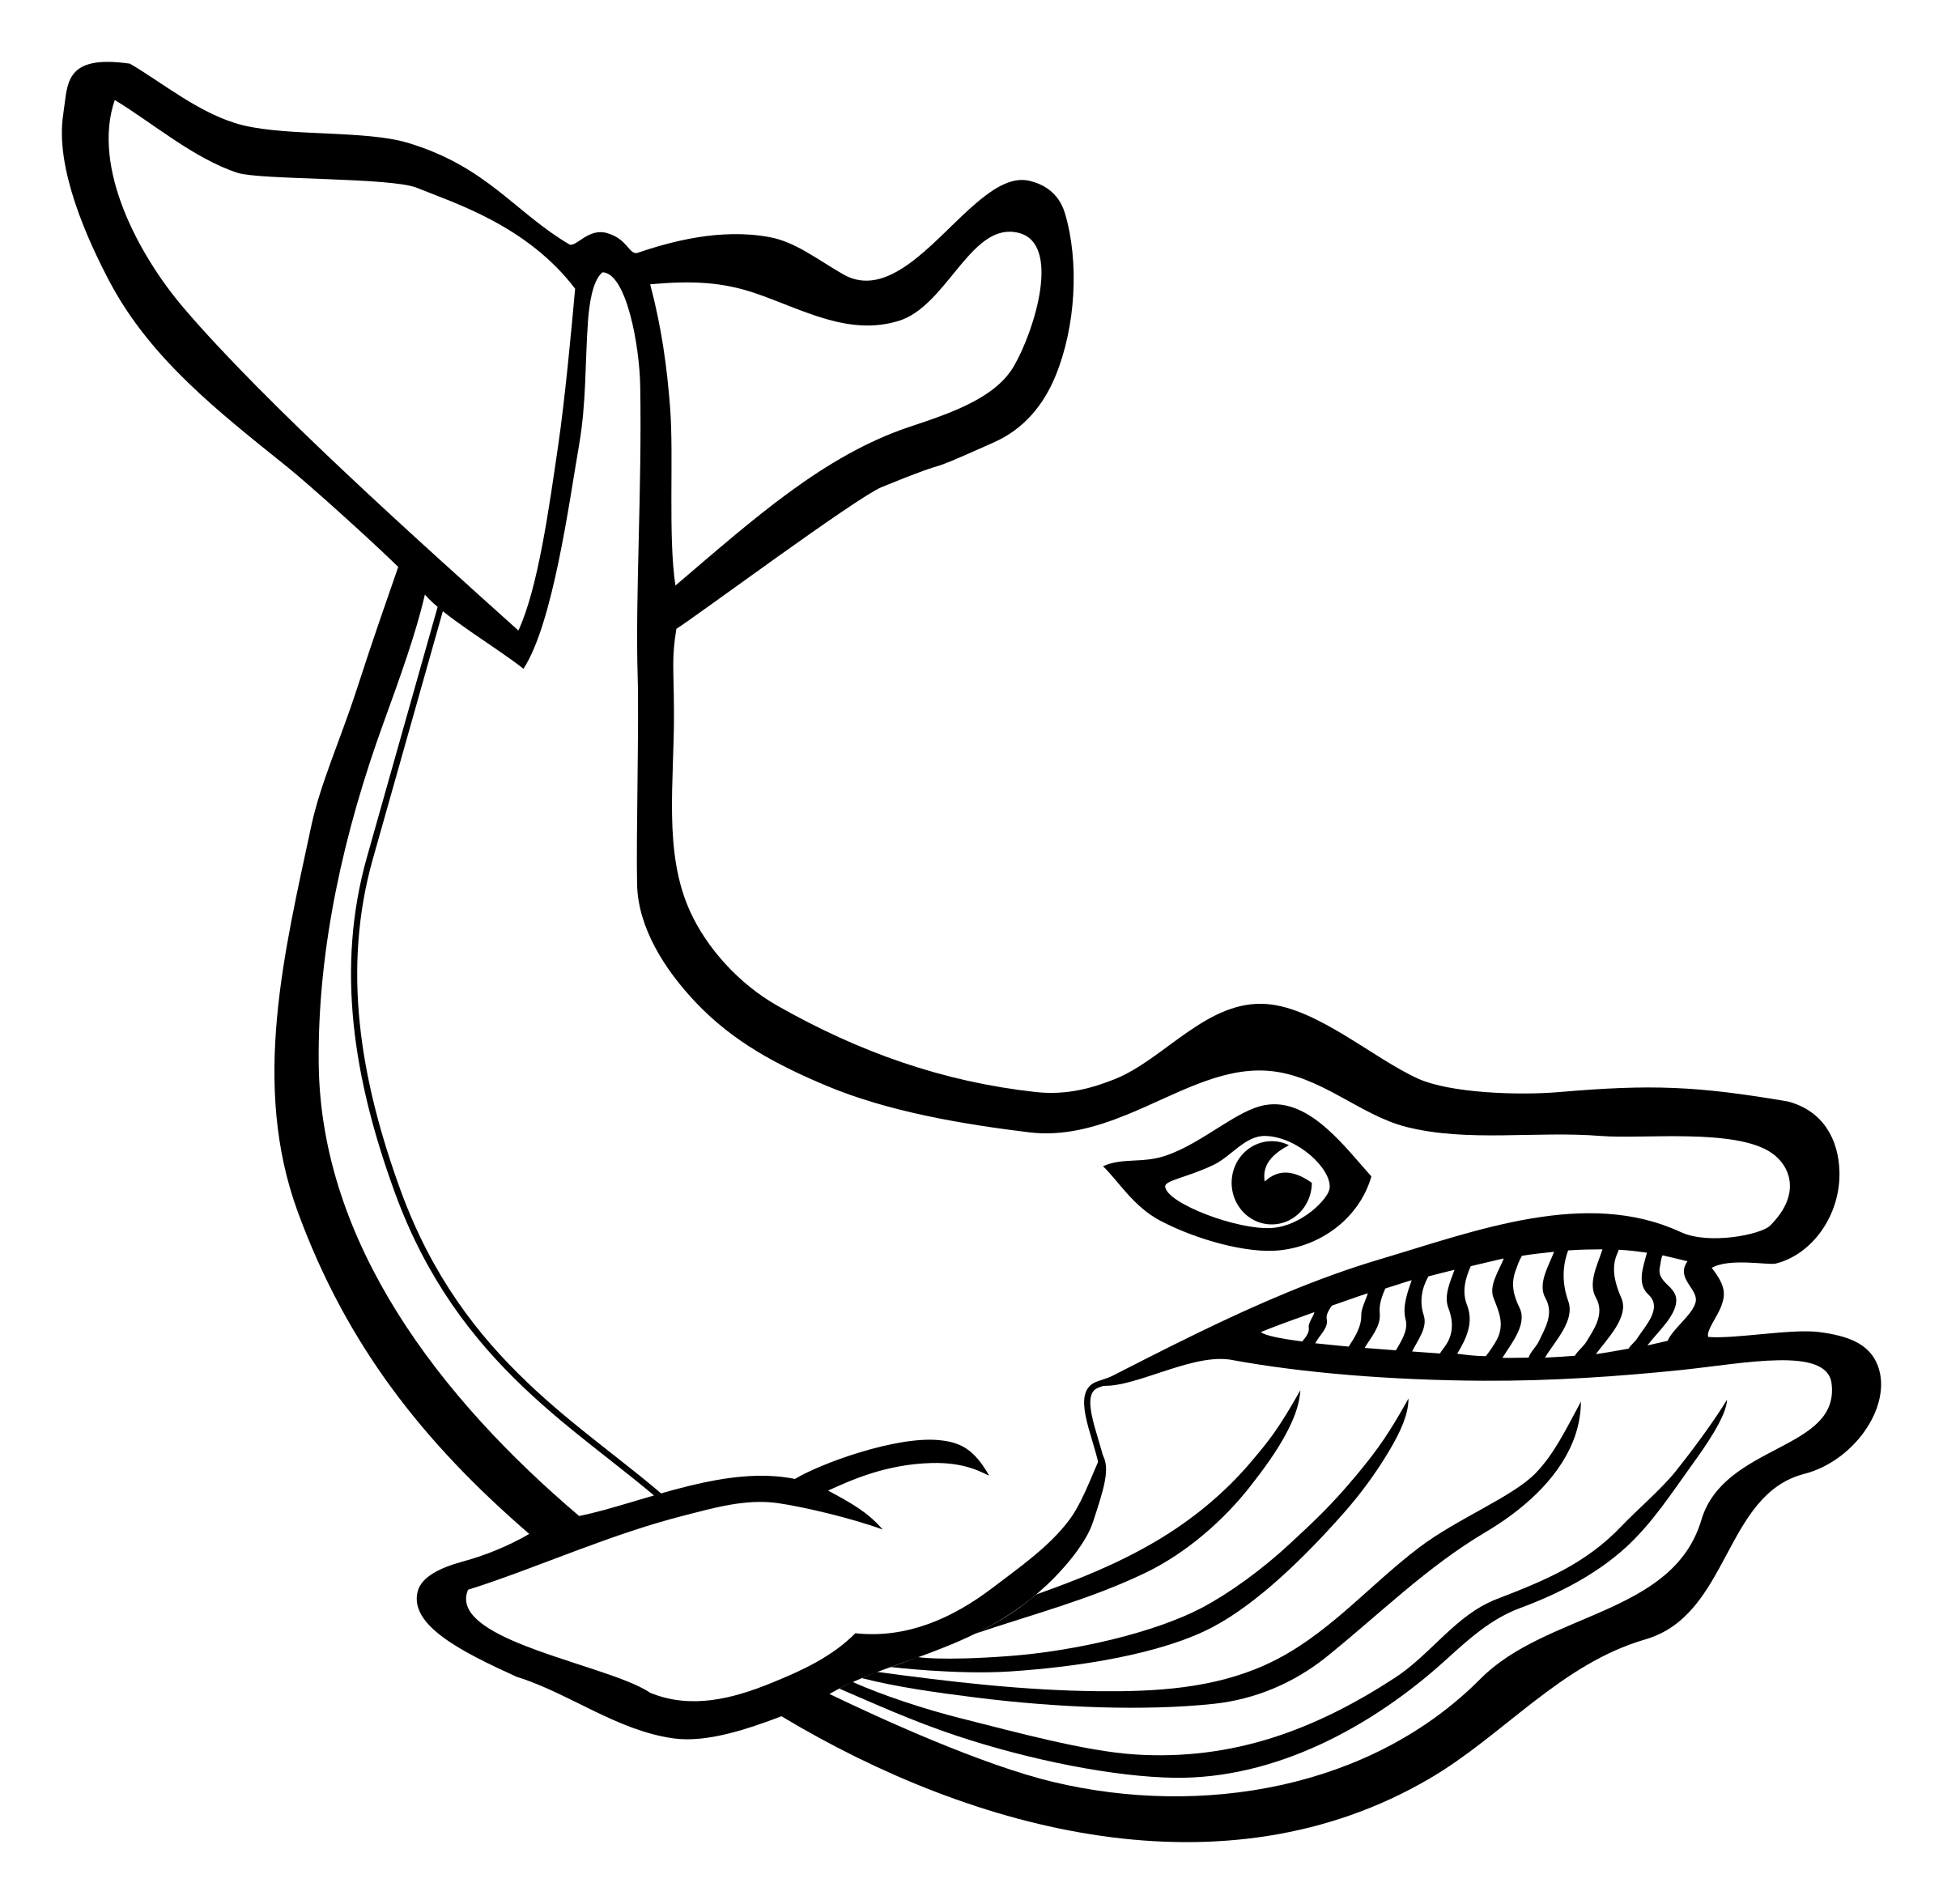 whale - lineart by frankes